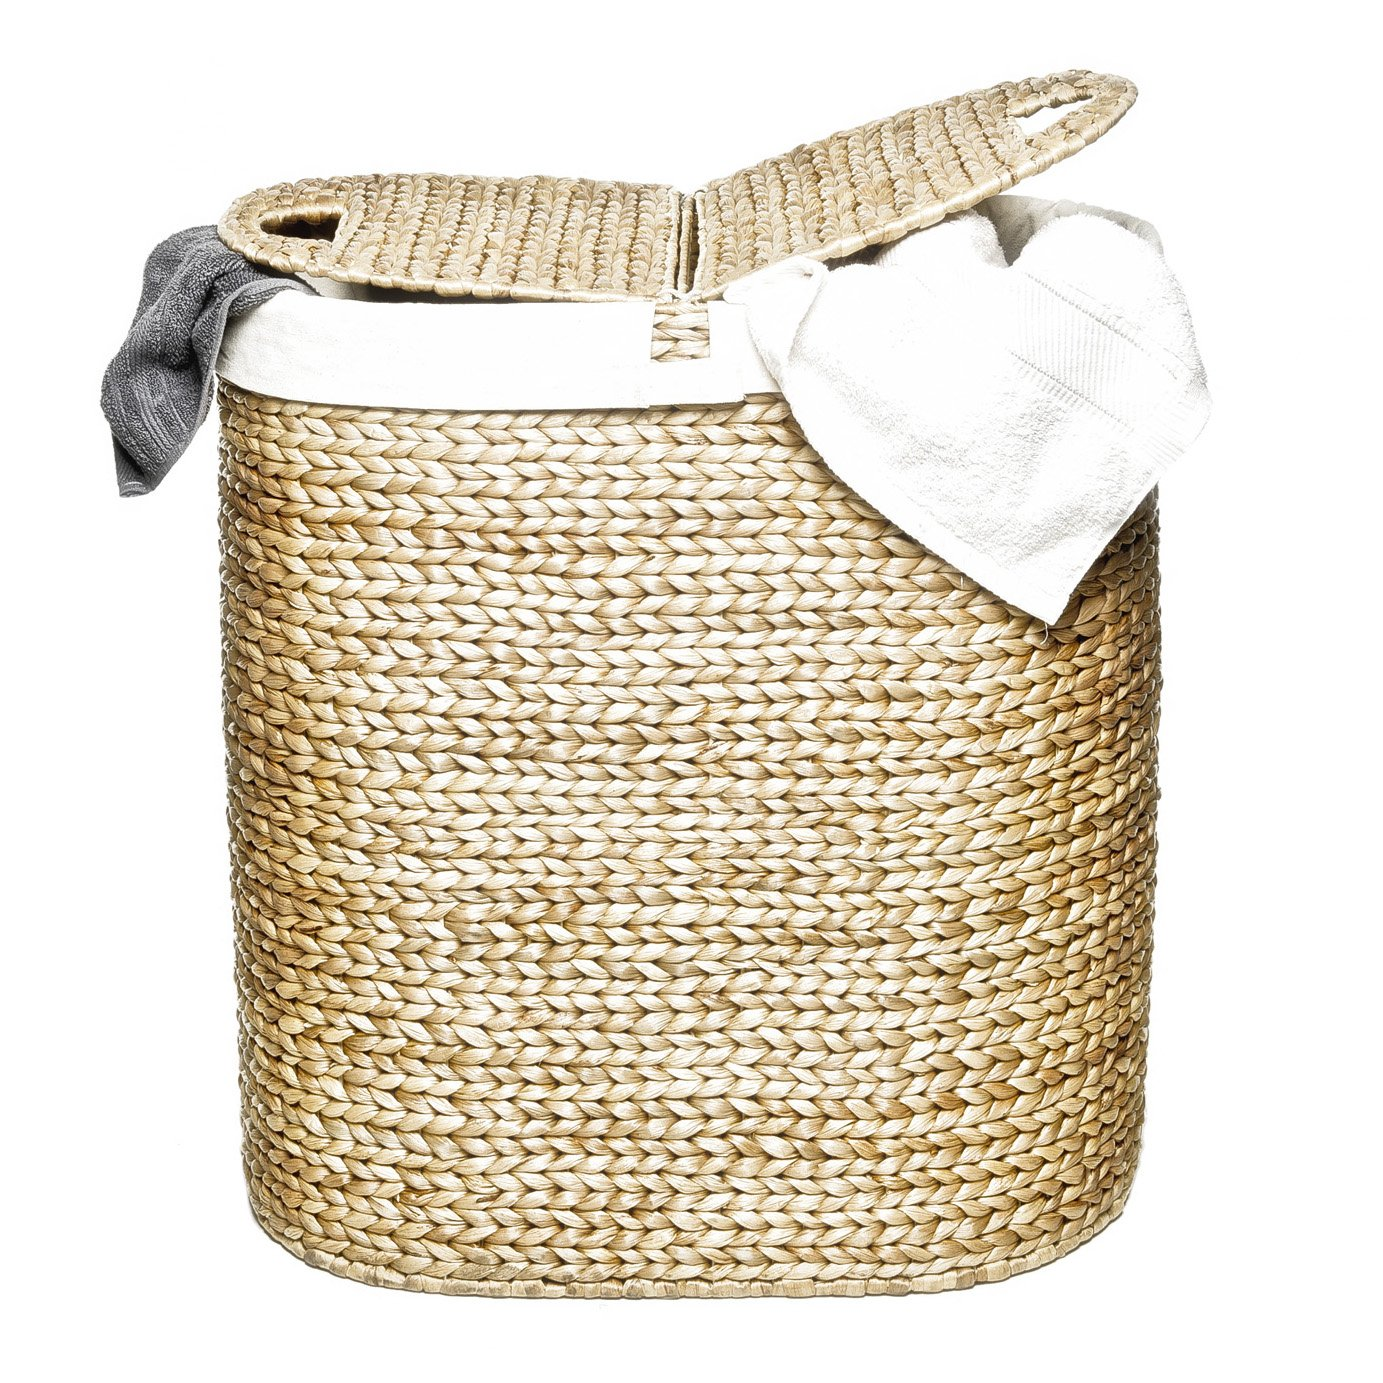 Hand Woven Oval laundry hamper with 2 sections